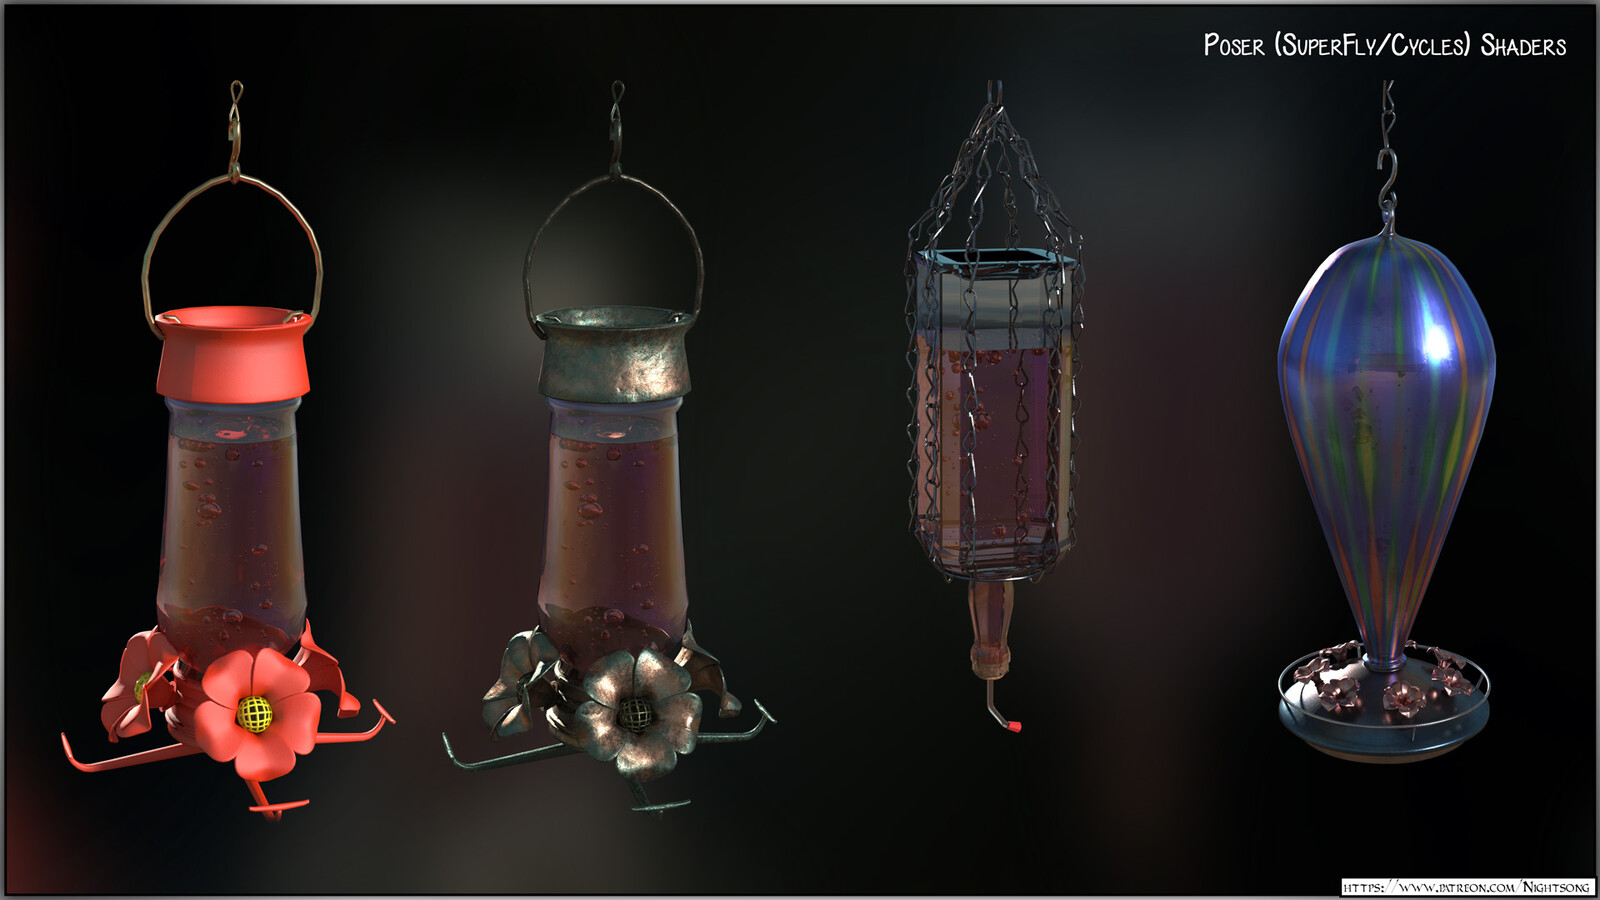 A texture preview of the hummingbird feeders in Poser, using the Superfly/Cycles render engine.